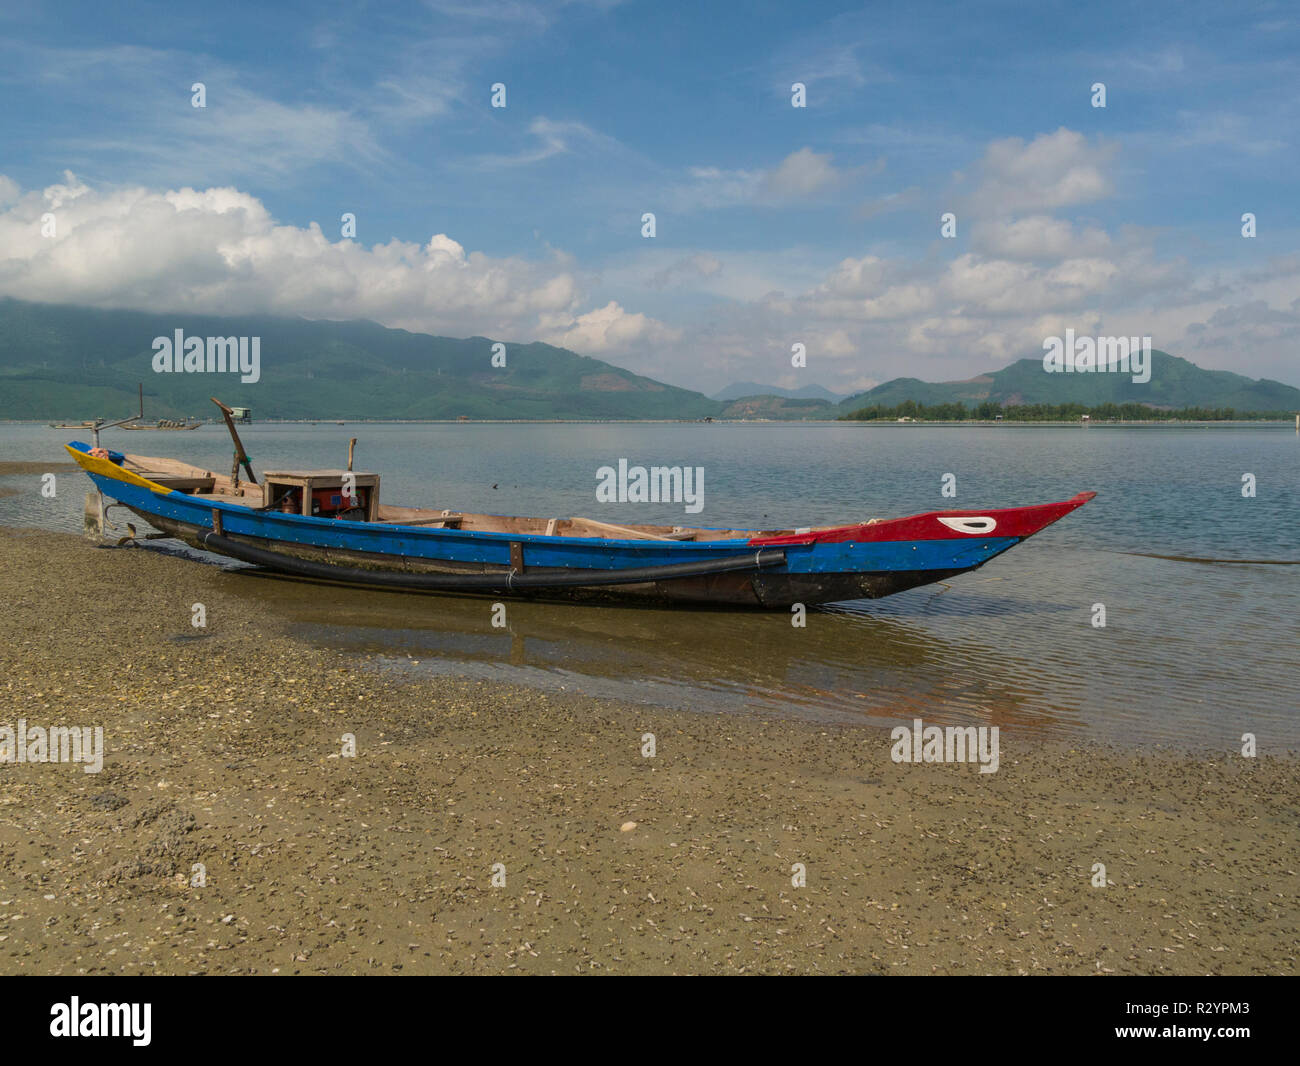 Fishing boat moored on beach of Lang Co village South Vietnam between Lap An Lagoon and South China Sea known for seafood - Stock Image